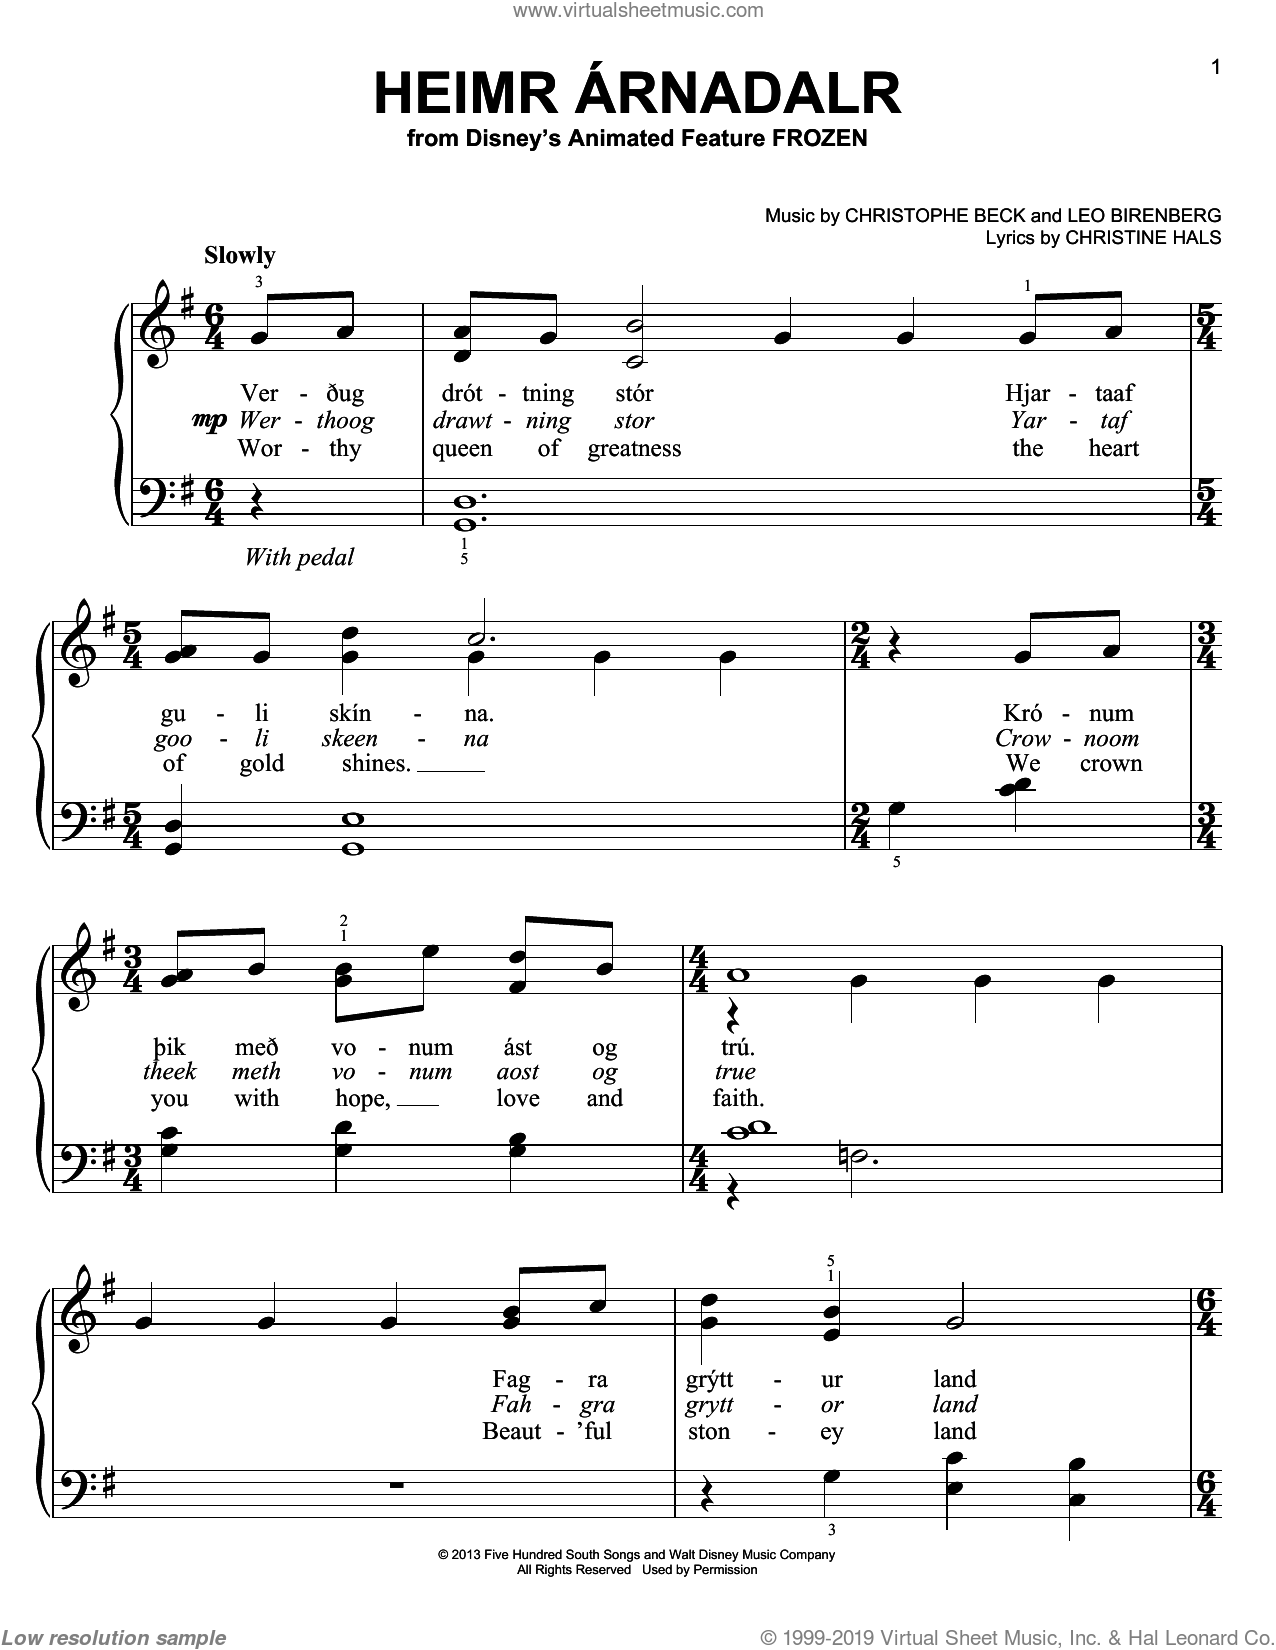 Heimr Arnadalr sheet music for piano solo by Christophe Beck and Christine Hals, easy piano. Score Image Preview.